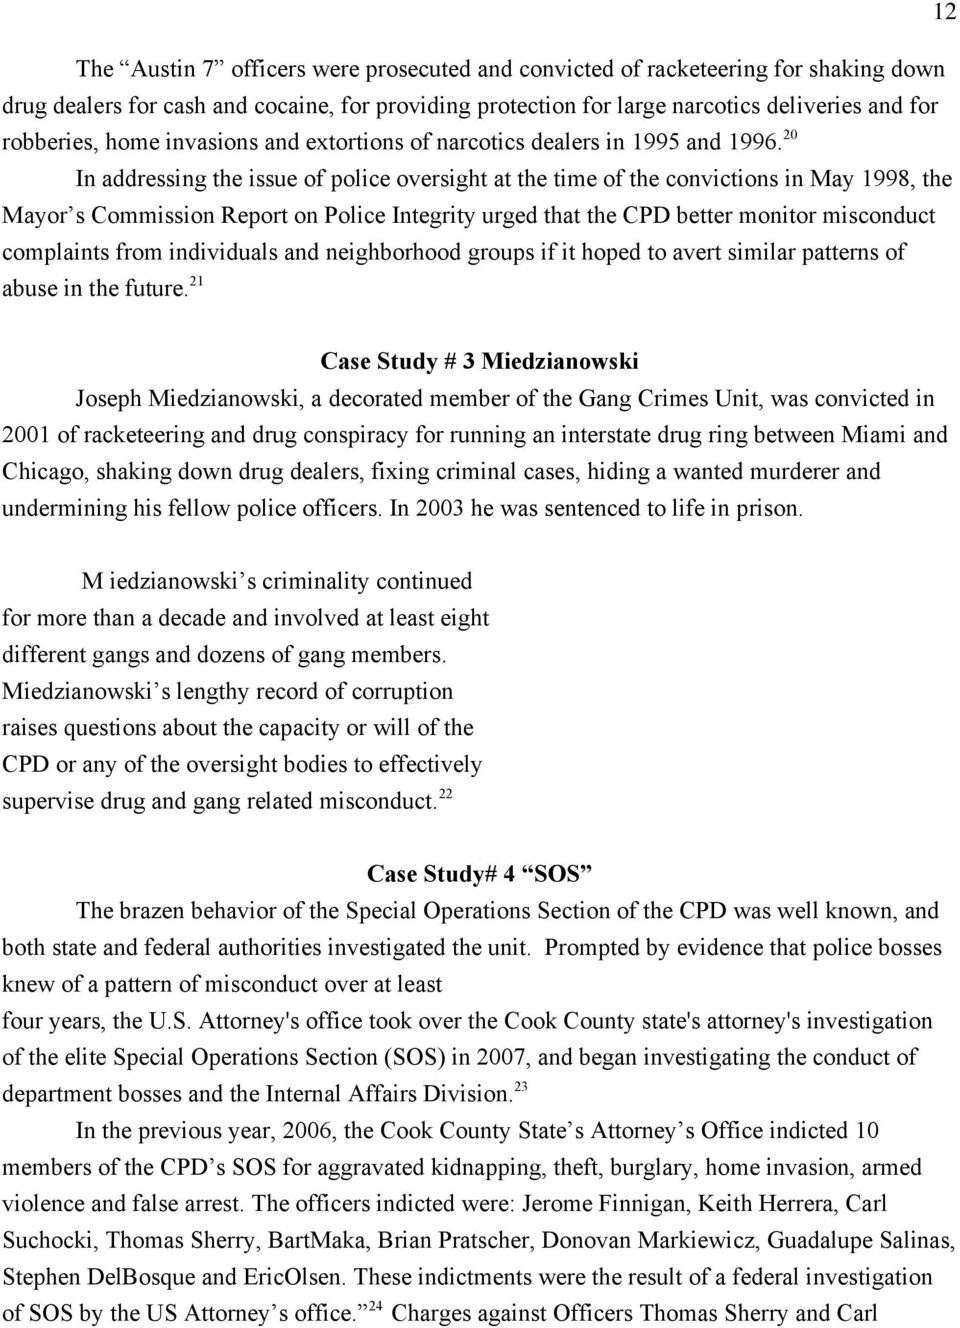 20 In addressing the issue of police oversight at the time of the convictions in May 1998, the Mayor s Commission Report on Integrity urged that the CPD better monitor misconduct complaints from